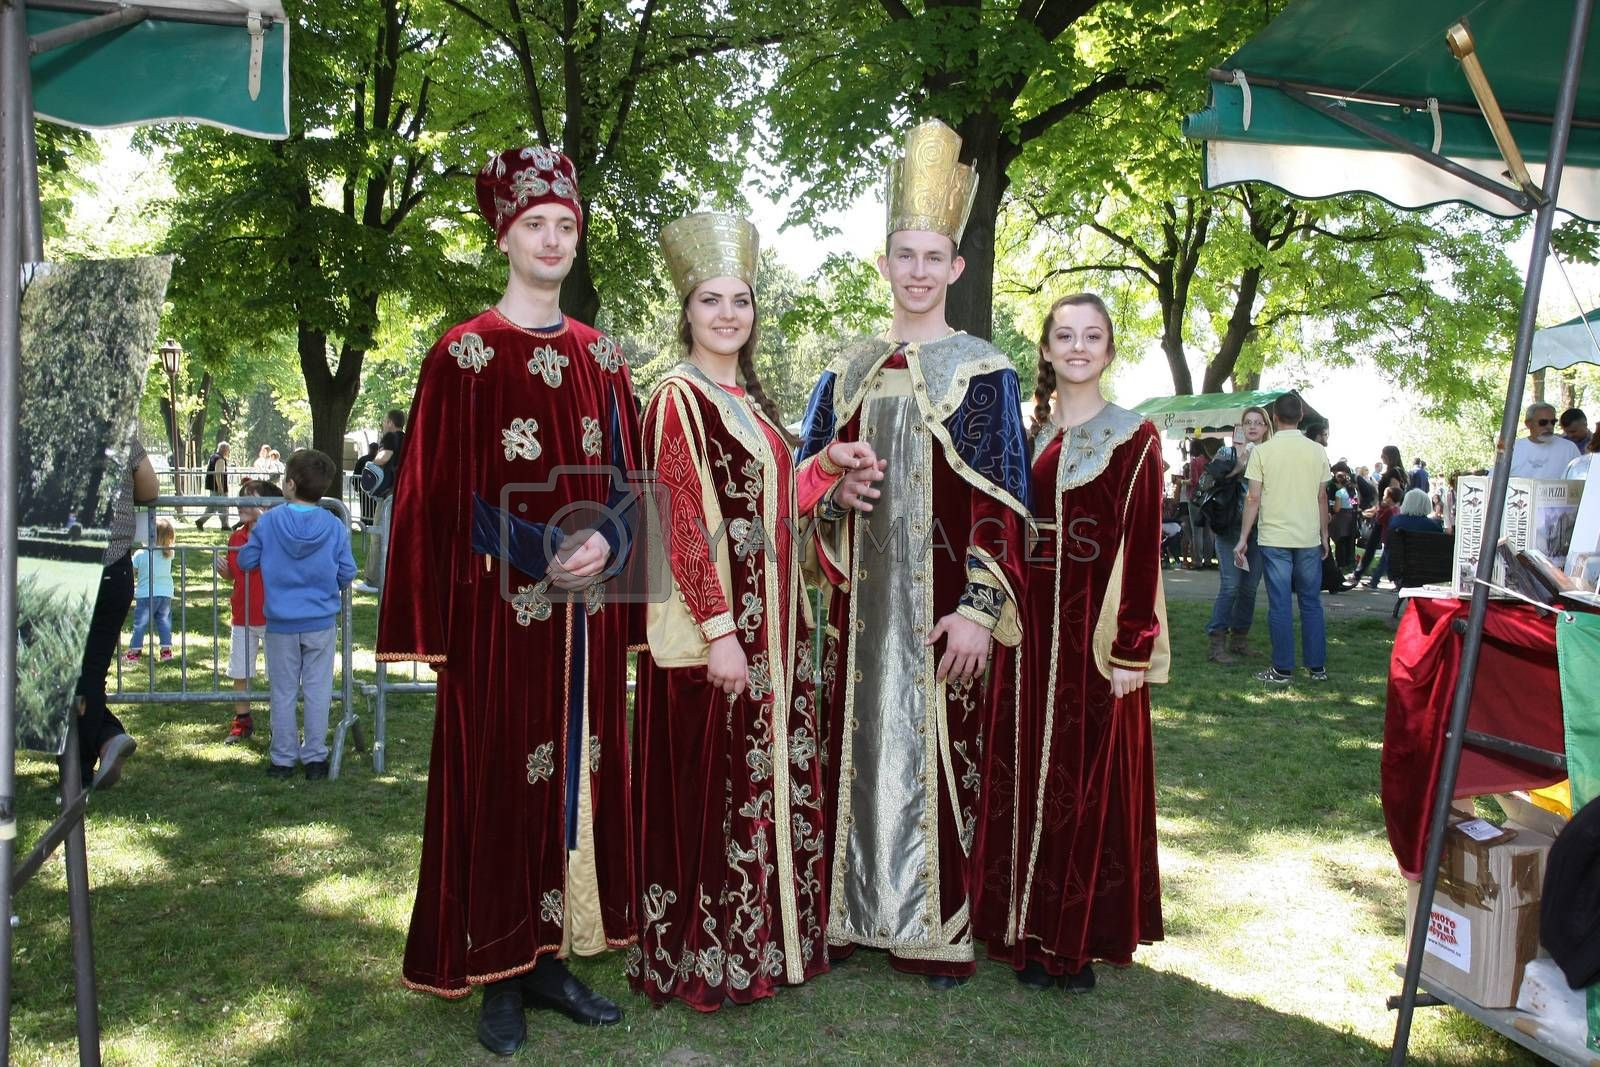 Participants of Belgrade Knight Fest held on 23 April in Belgrade,Serbia,posing in medieval court clothes